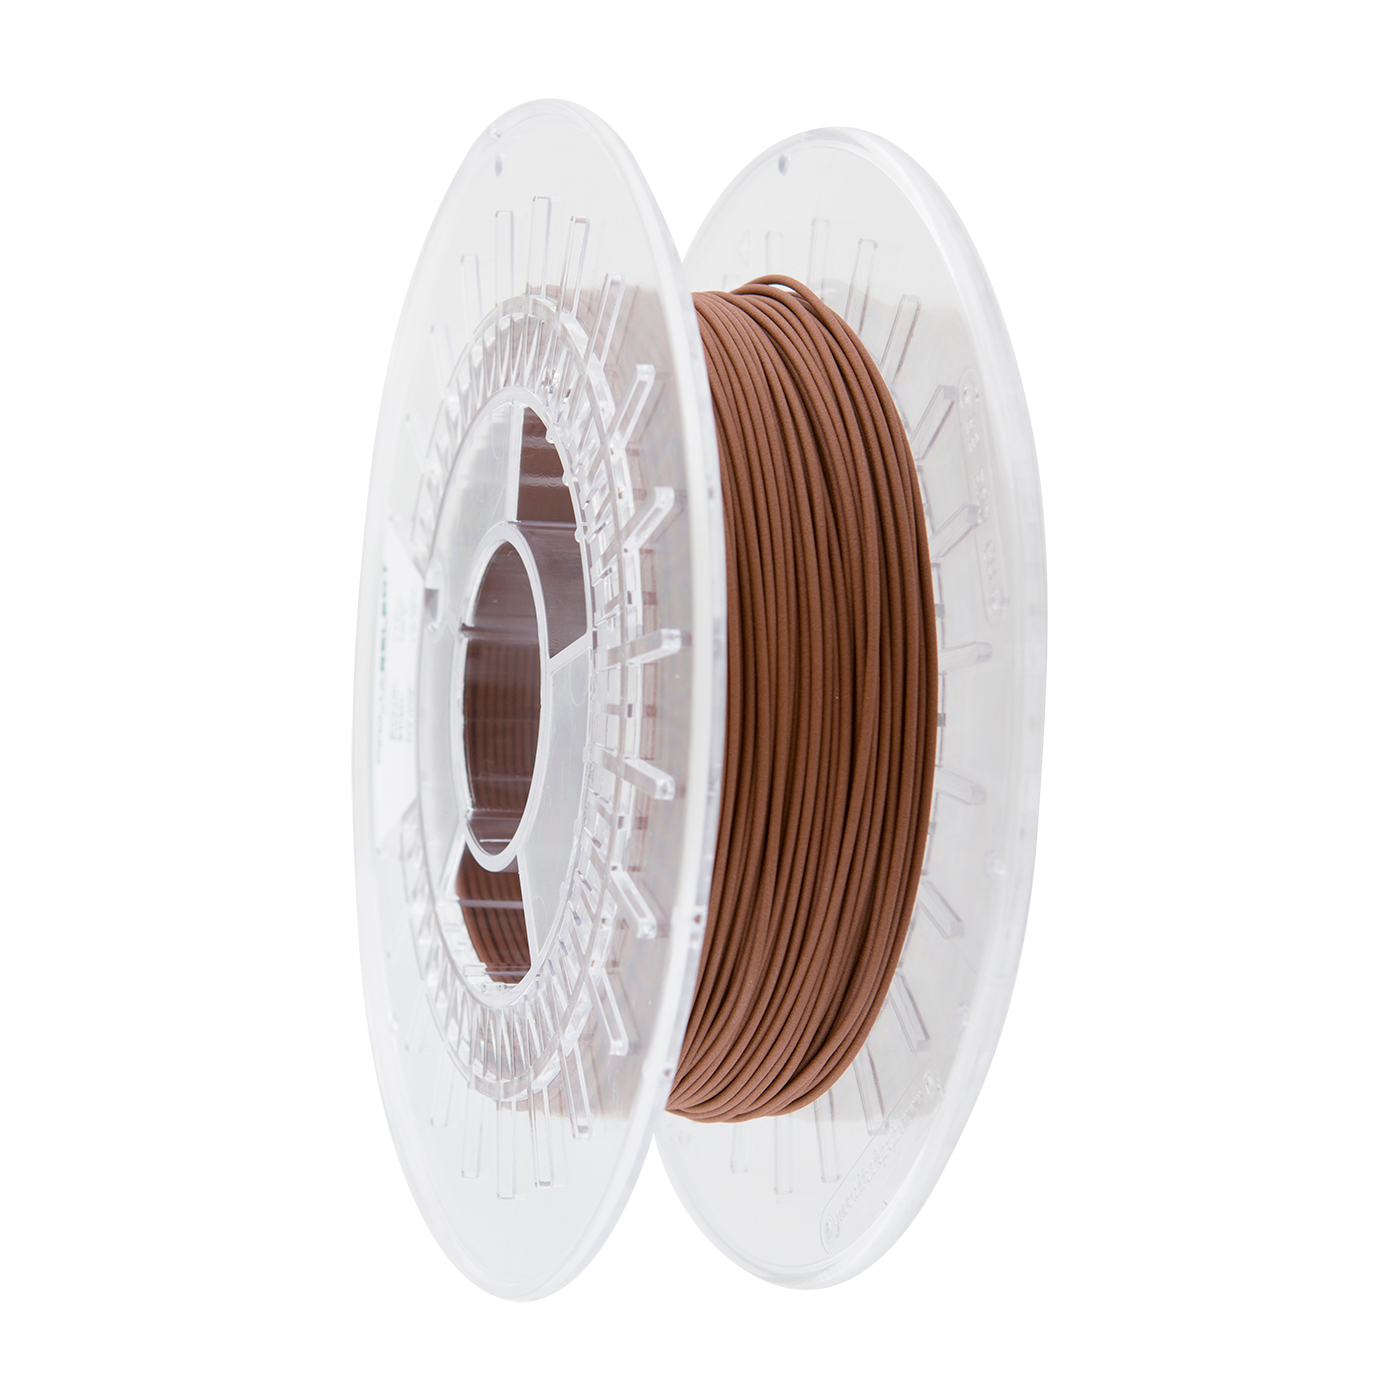 Primaselect Metal 175mm 750 G Copper Filaments Wiring Devices 001